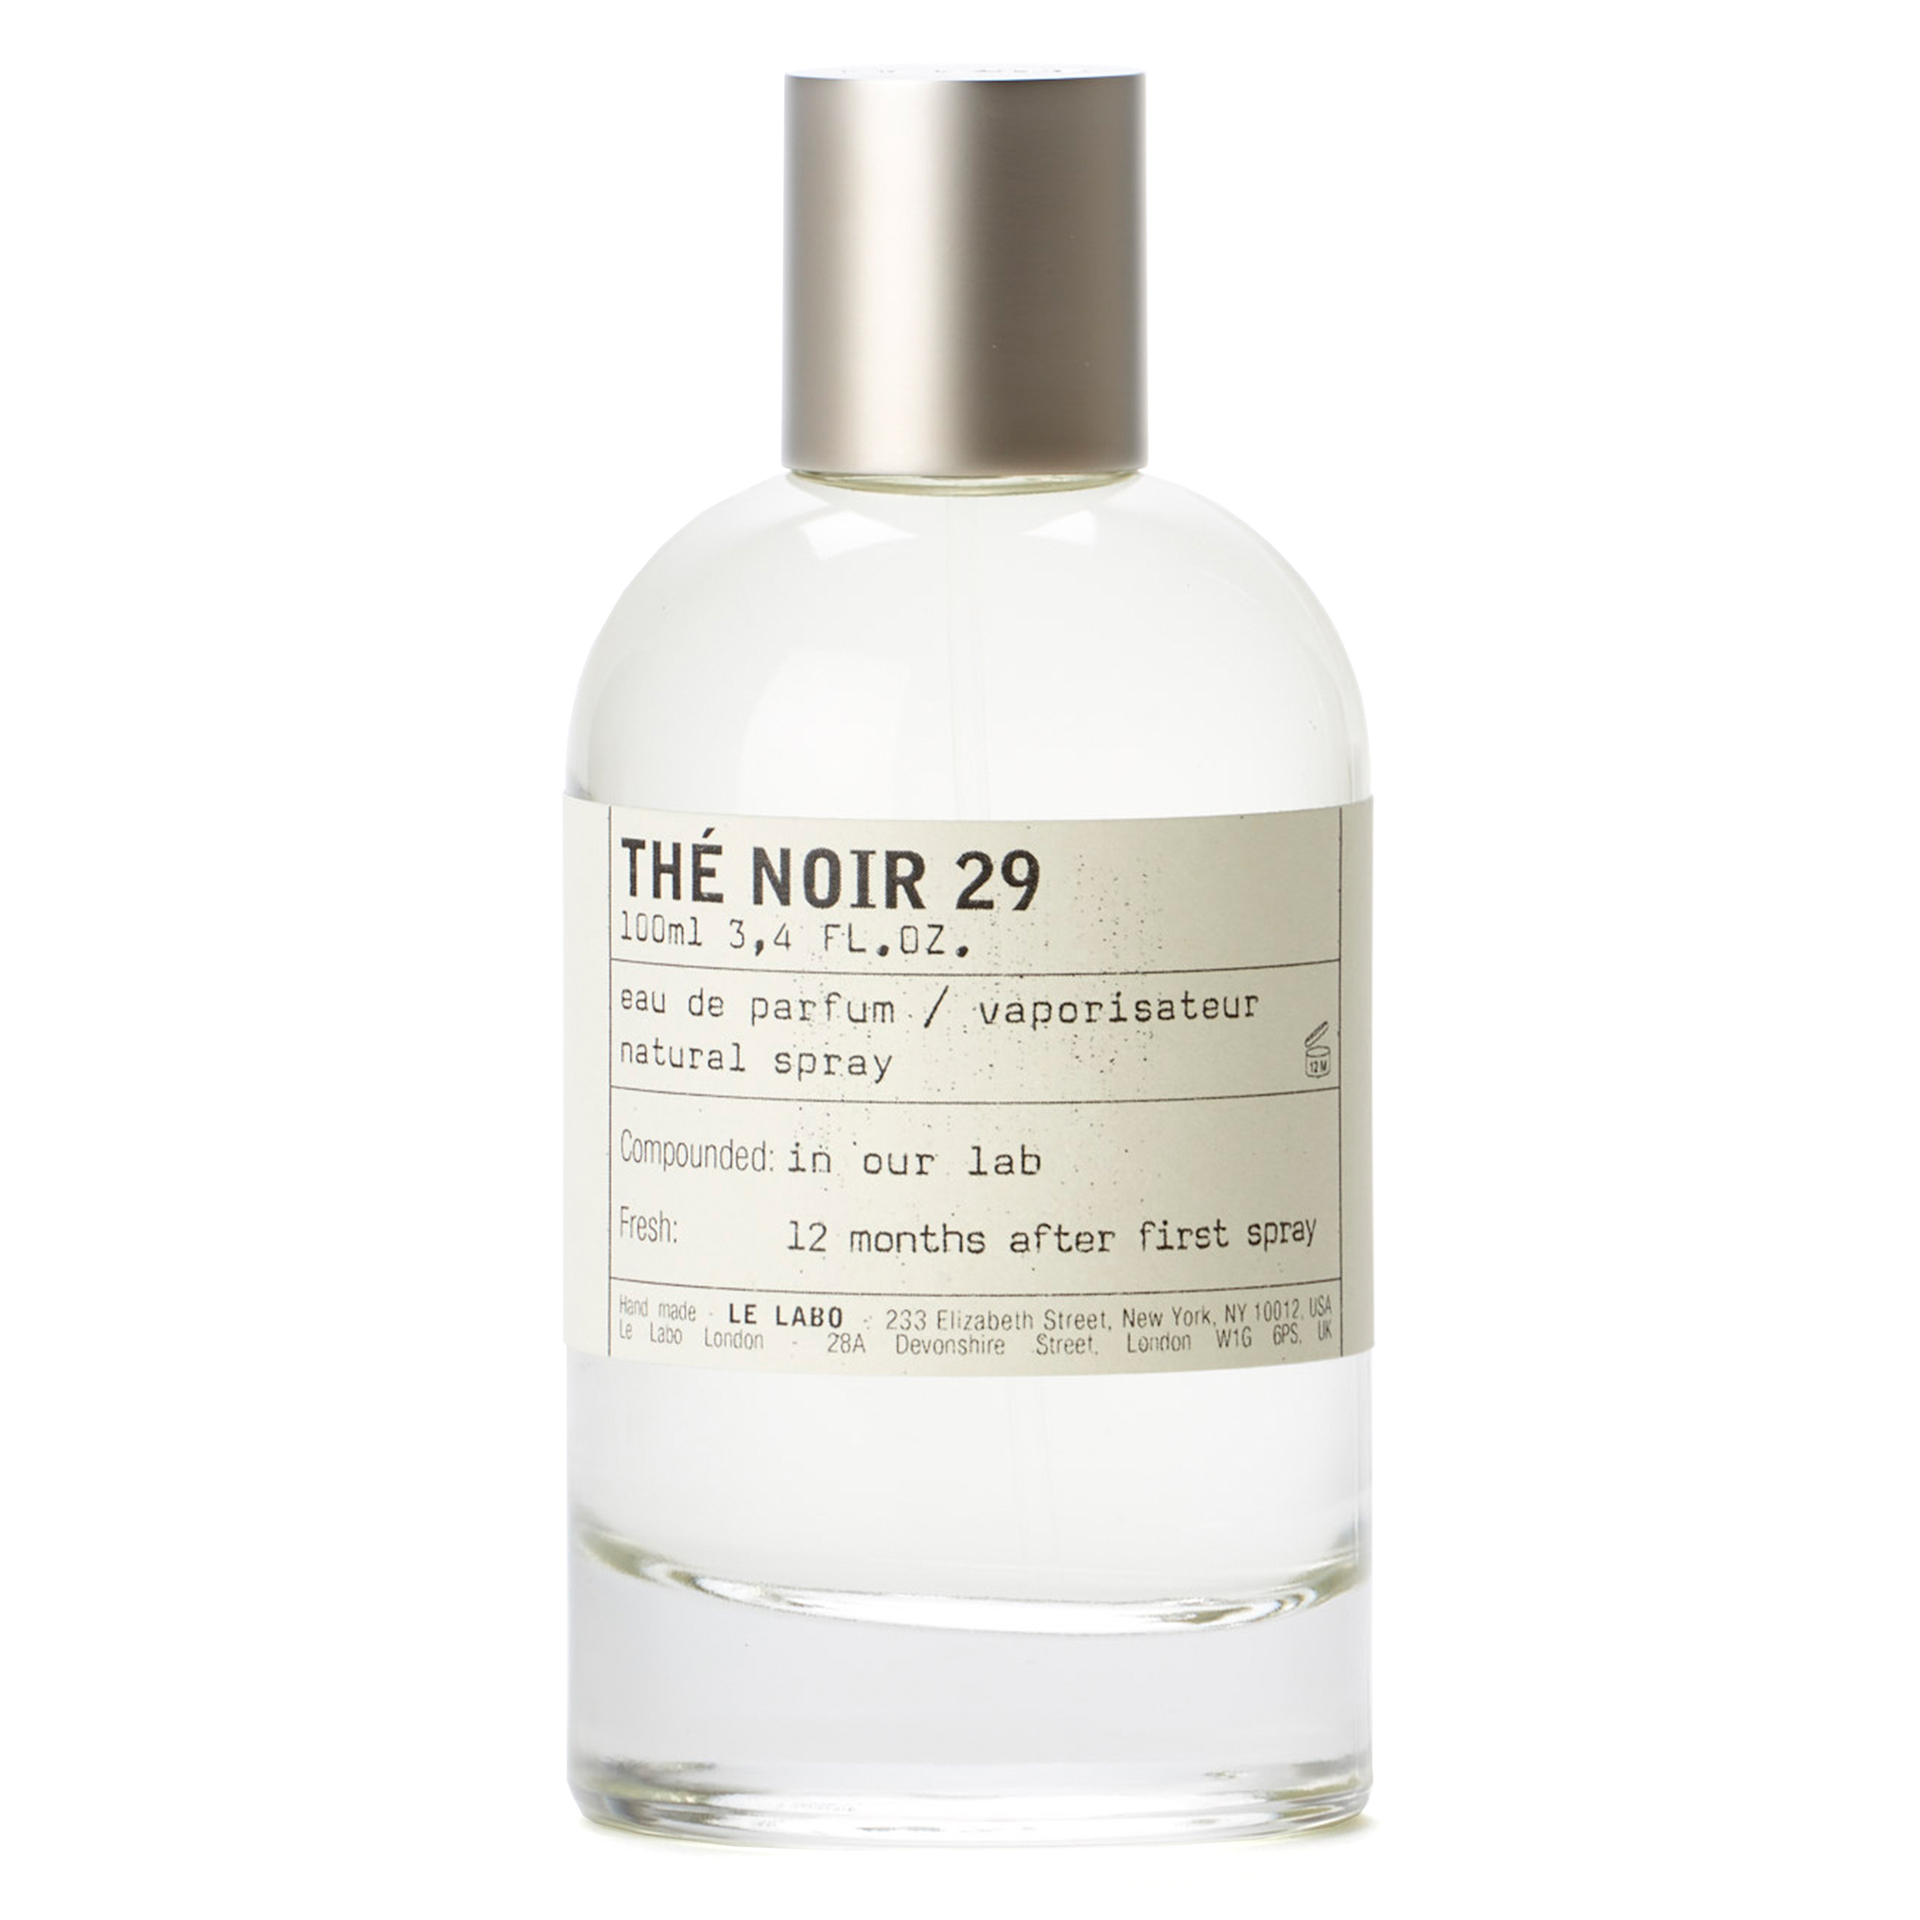 The noir 29 Edp